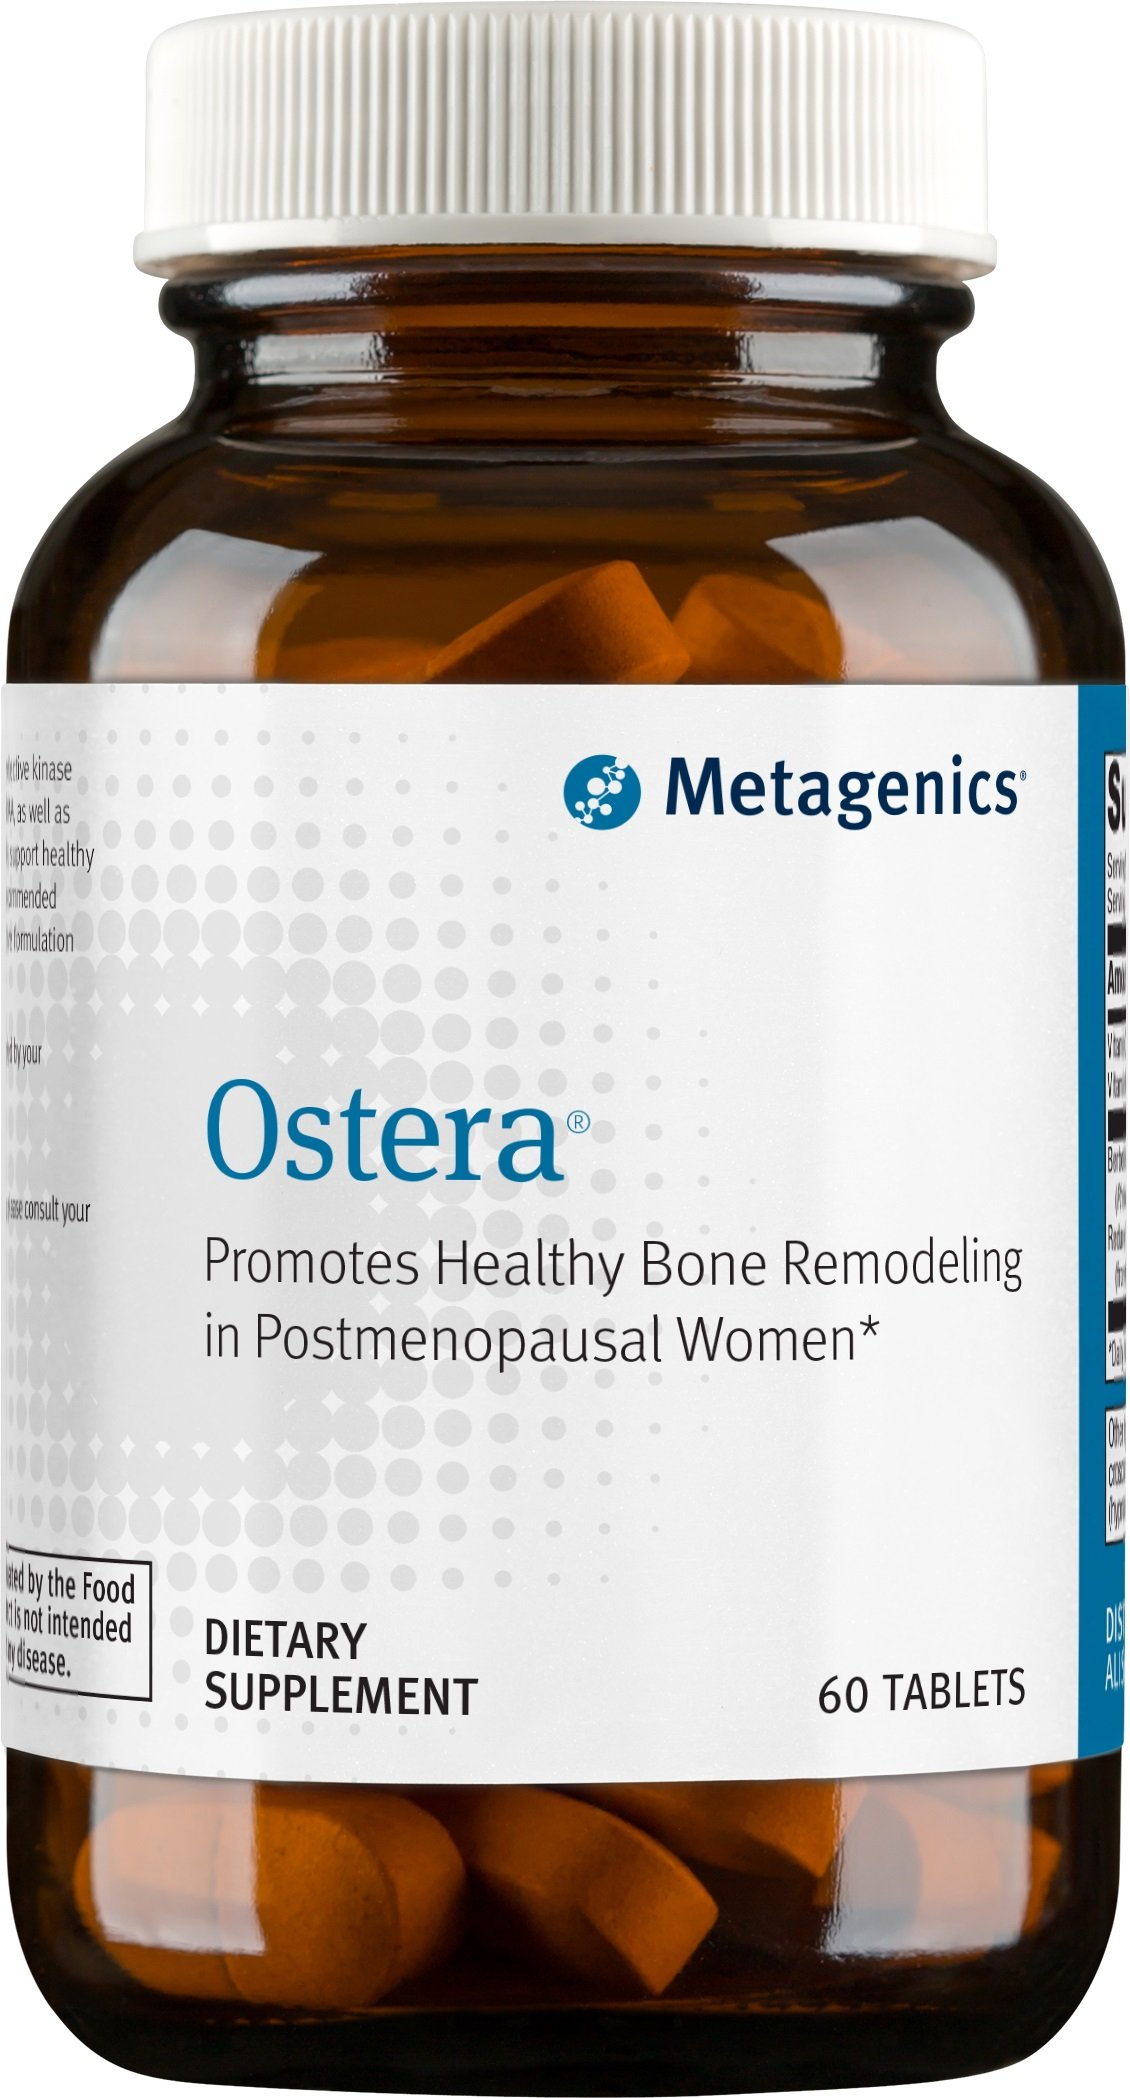 Metagenics - Ostera, 60 Count by Metagenics